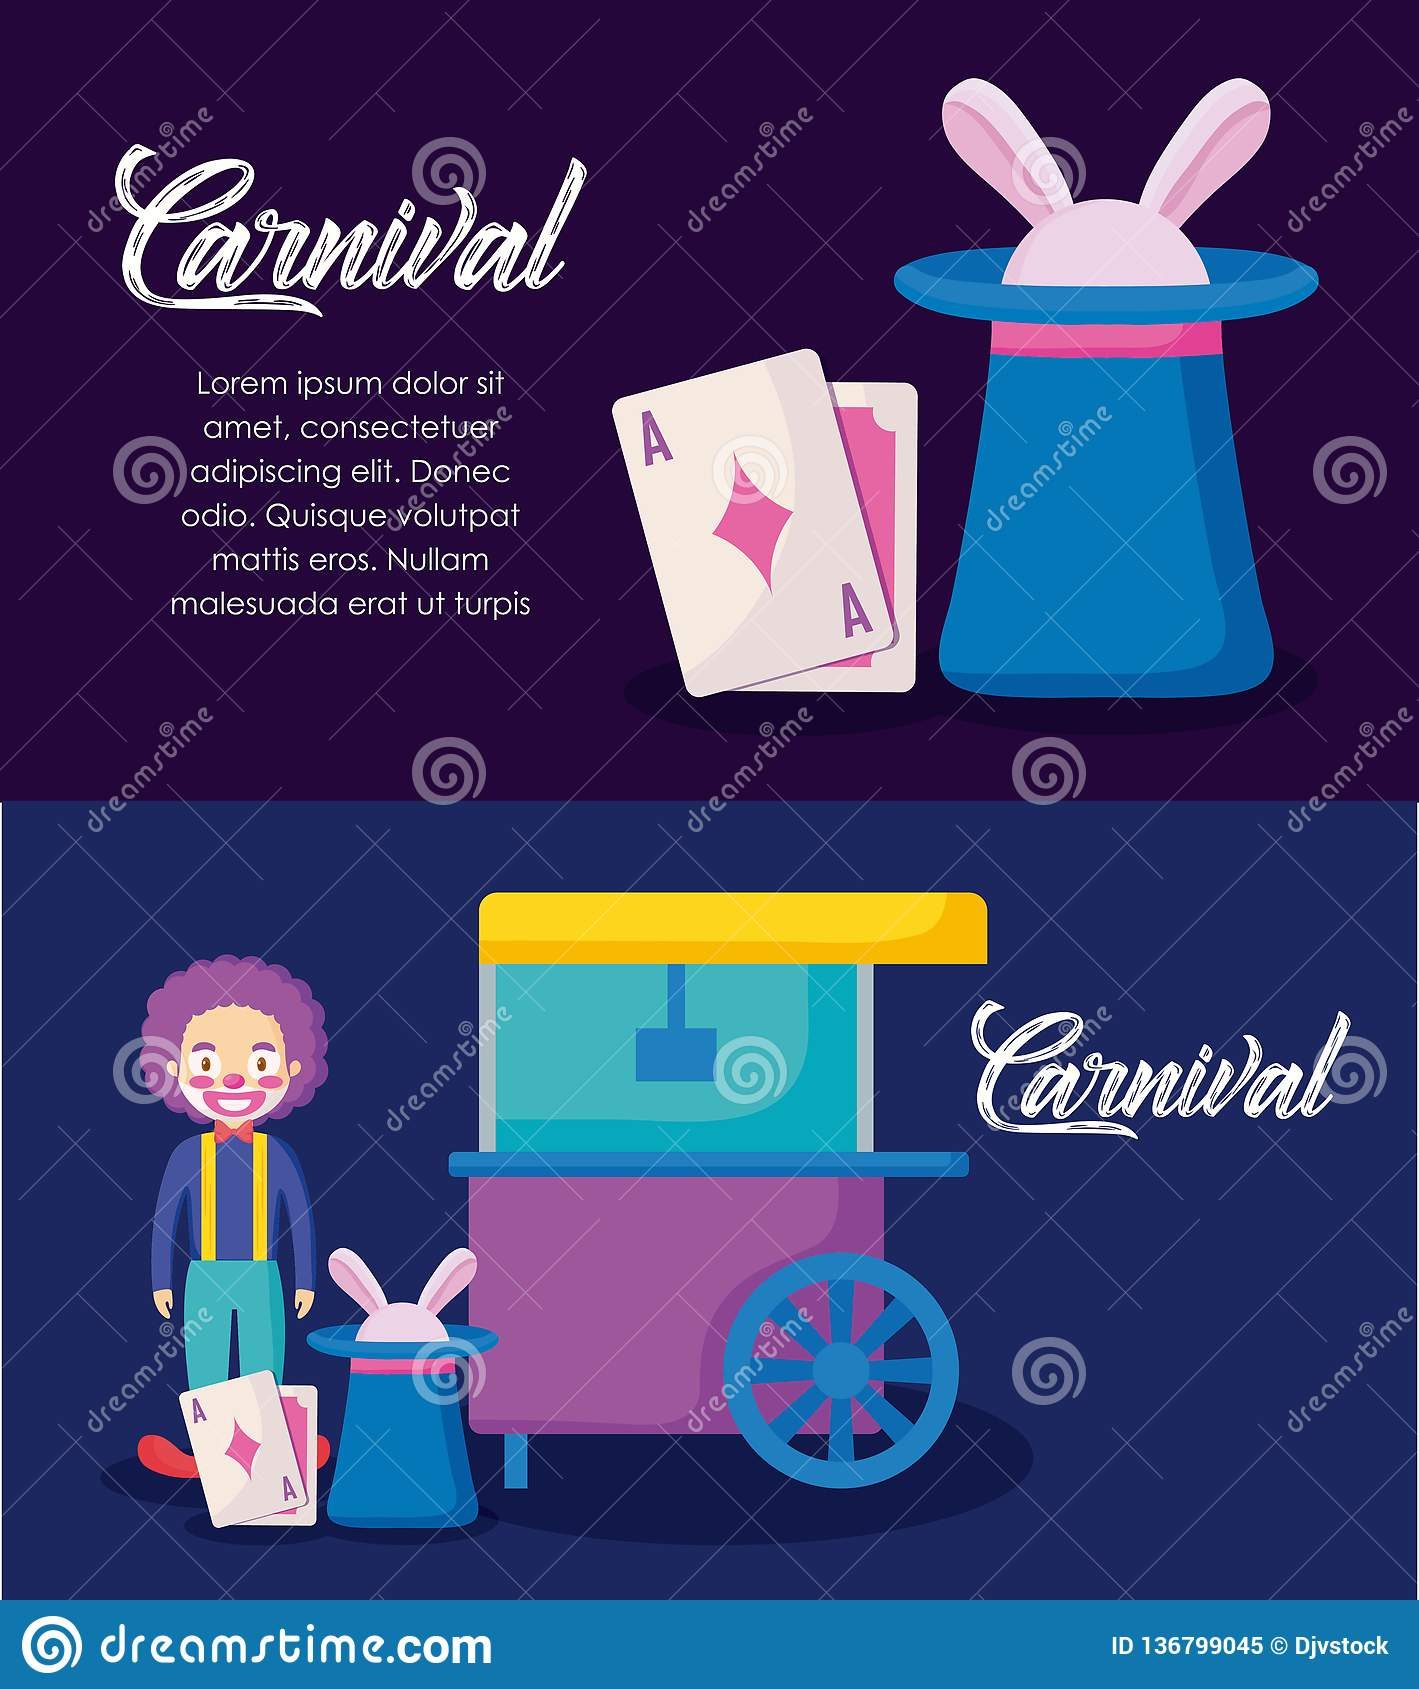 Carnaval-vierings infographic pictogrammen